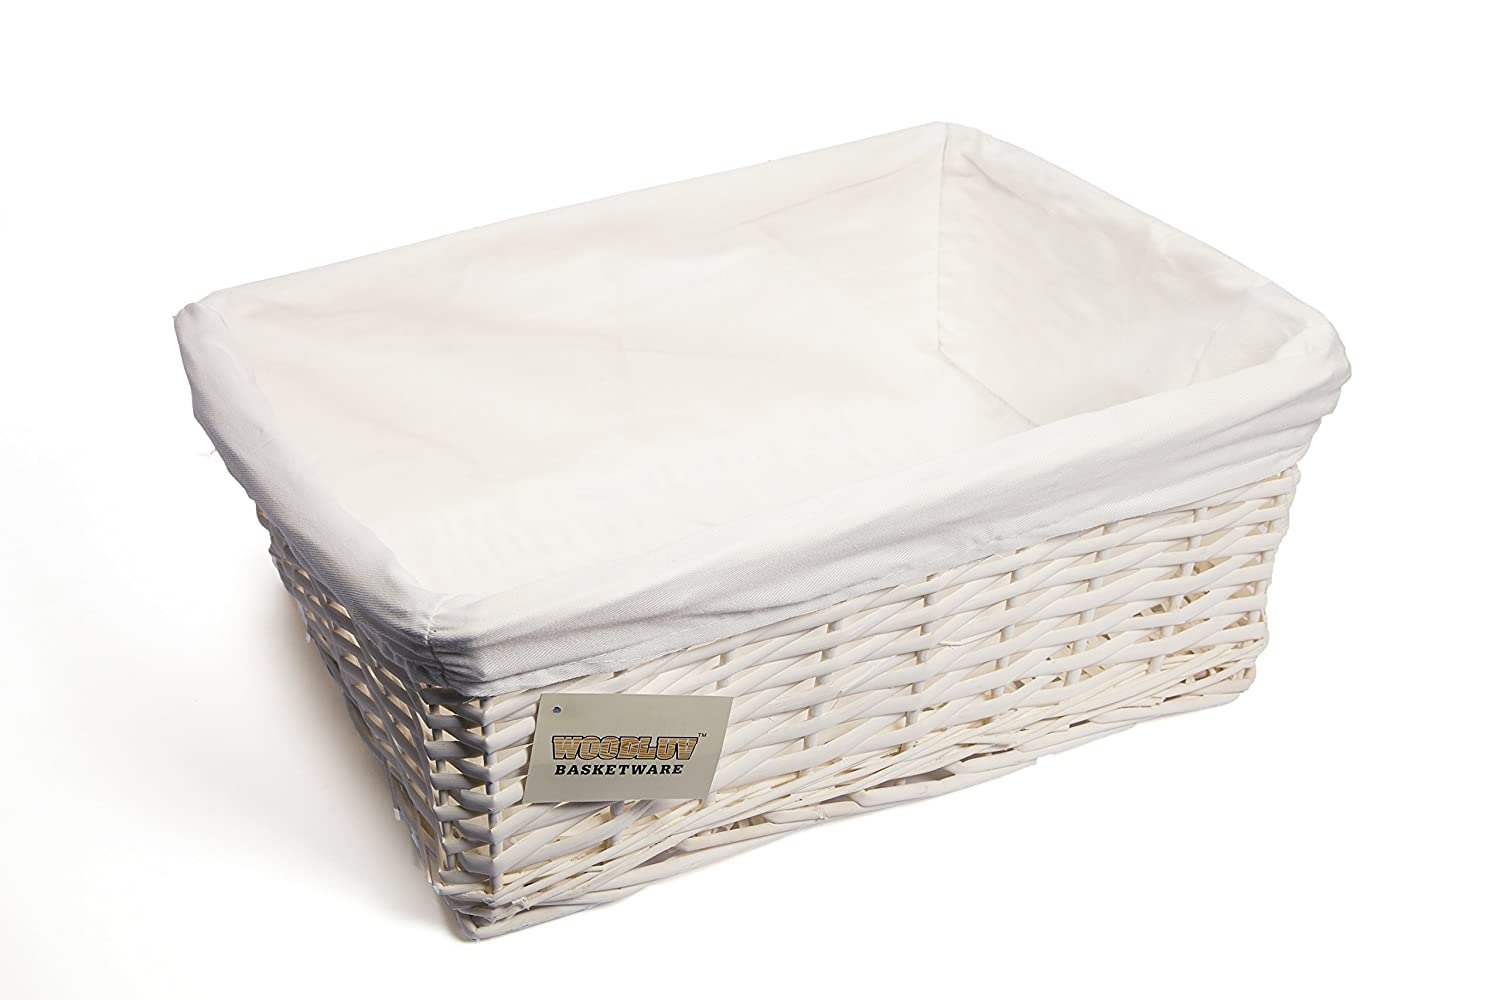 Charmant Woodluv New White Wicker Storage Basket With White Cloth Lining (Large)  E01 300L: Amazon.co.uk: Kitchen U0026 Home